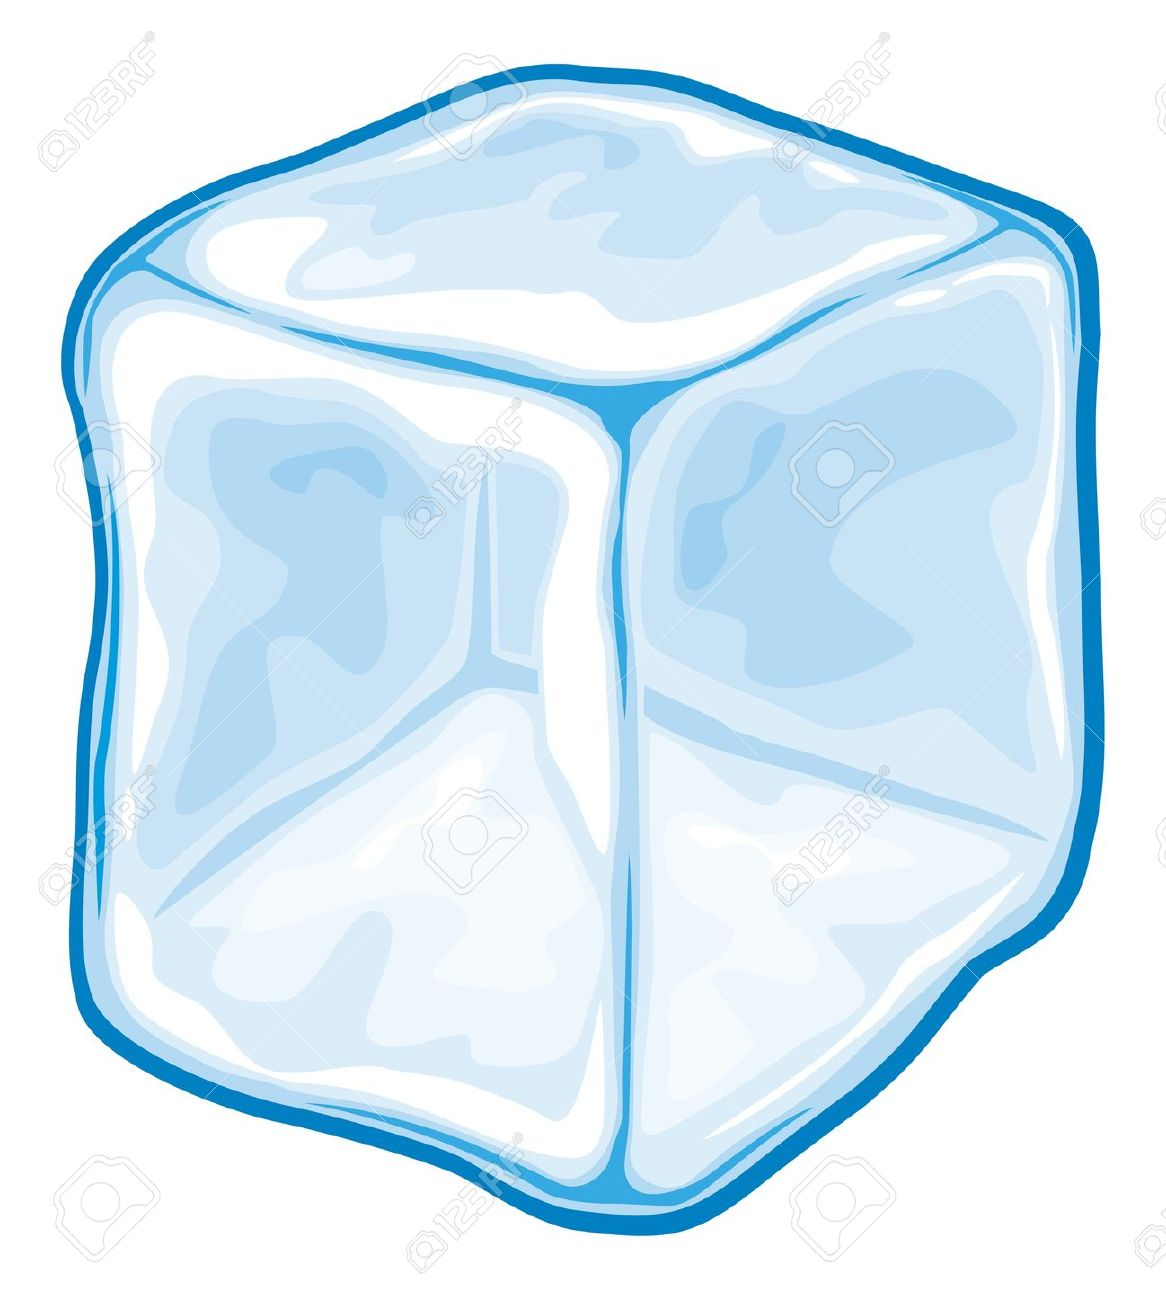 Ice Cubes In Water Clipart.